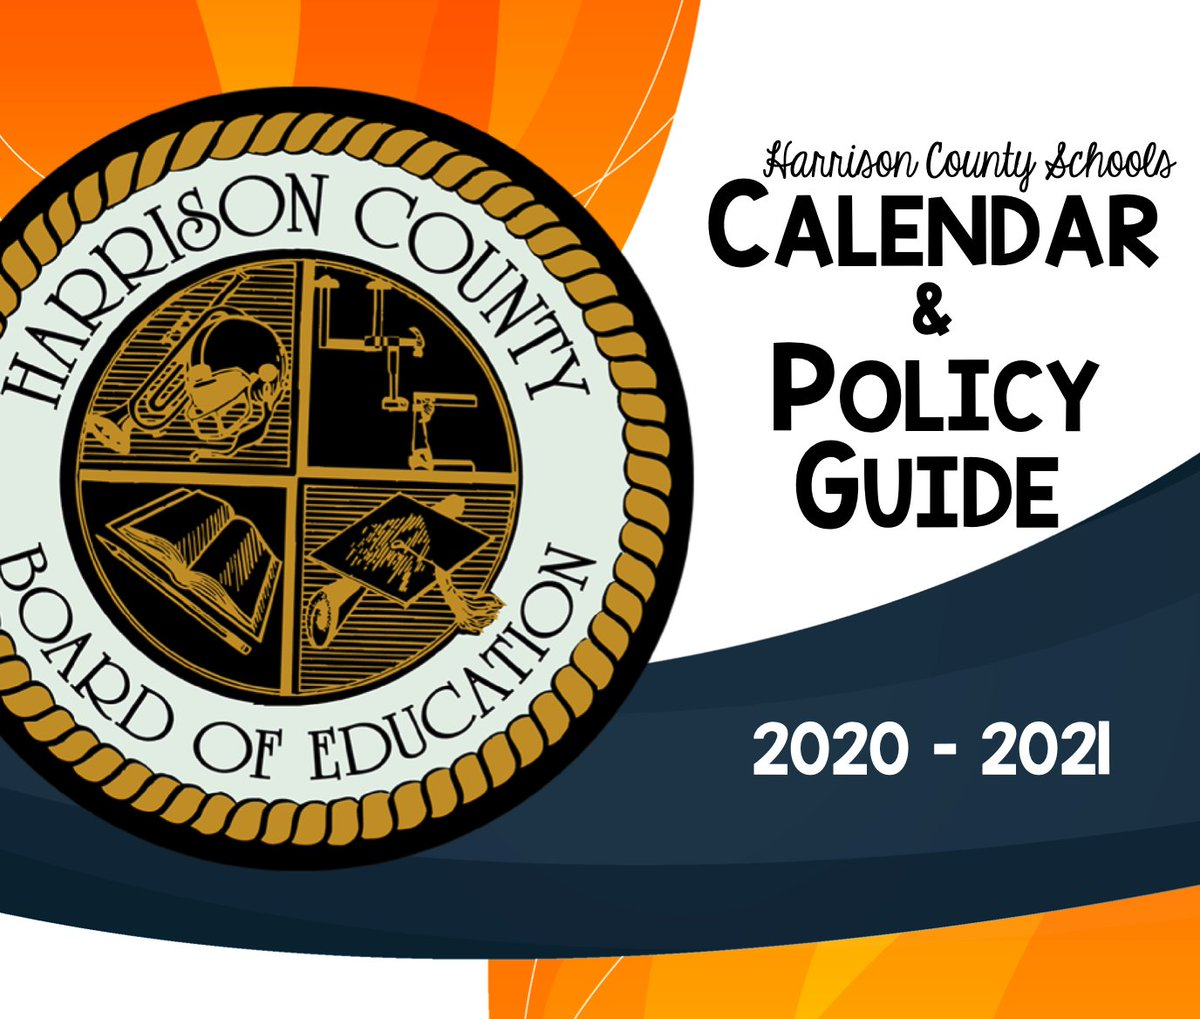 Harrison County Schools is pleased to be working with our families. If you have not reviewed it yet, the 2020-21 Harrison County Schools Calendar and Policy Guide is available here .